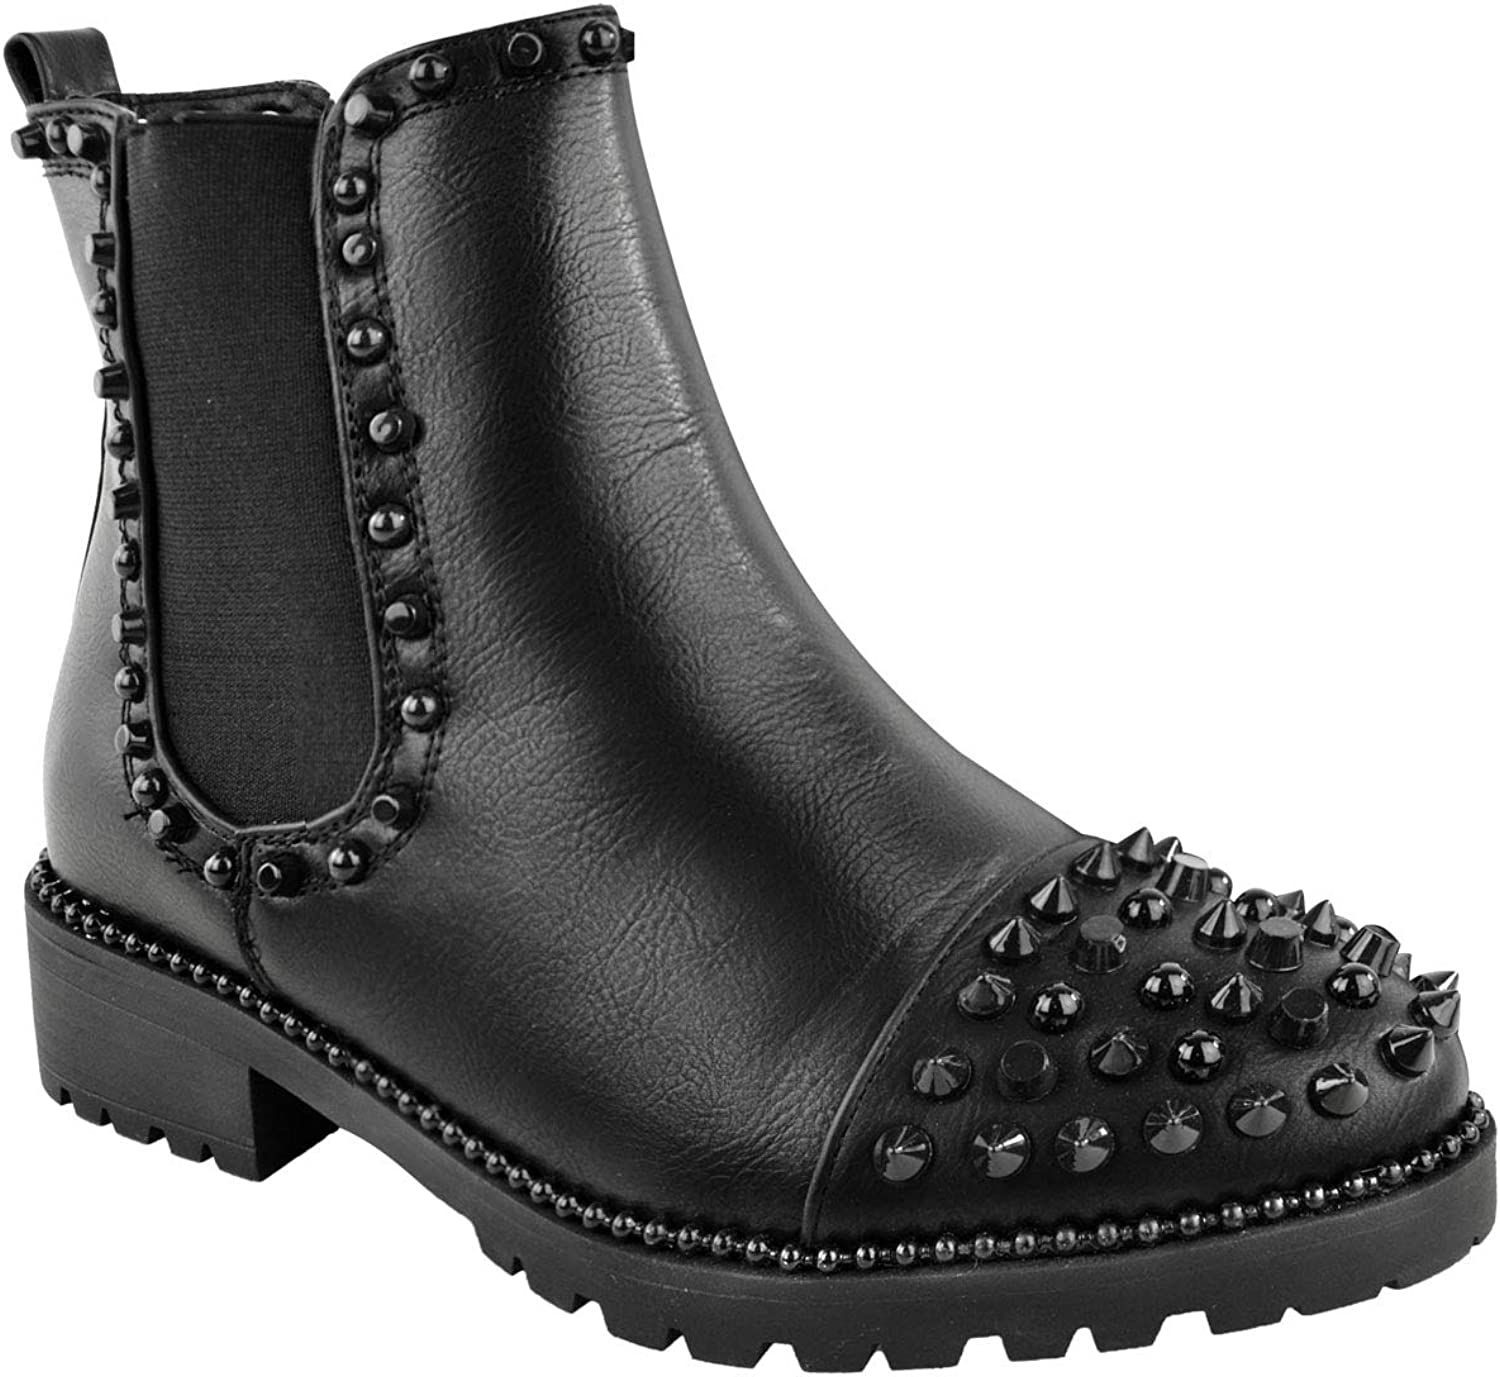 Fashion Thirsty Womens Low Spike Studded Chunky Ankle Boots Biker Goth Punk Grunge Size